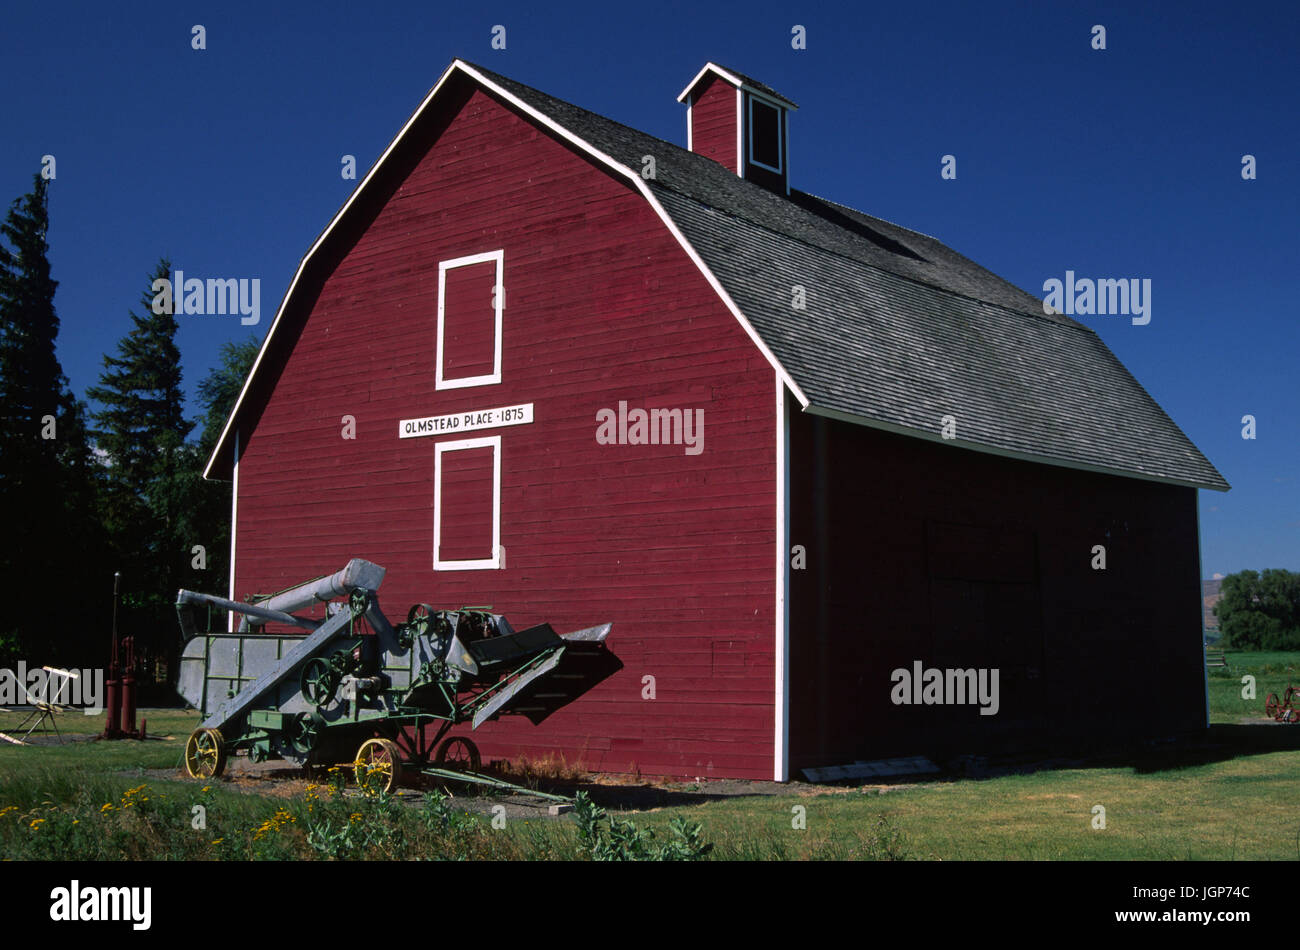 Olmstead Place barn, Olmstead Place State Park, Washington - Stock Image